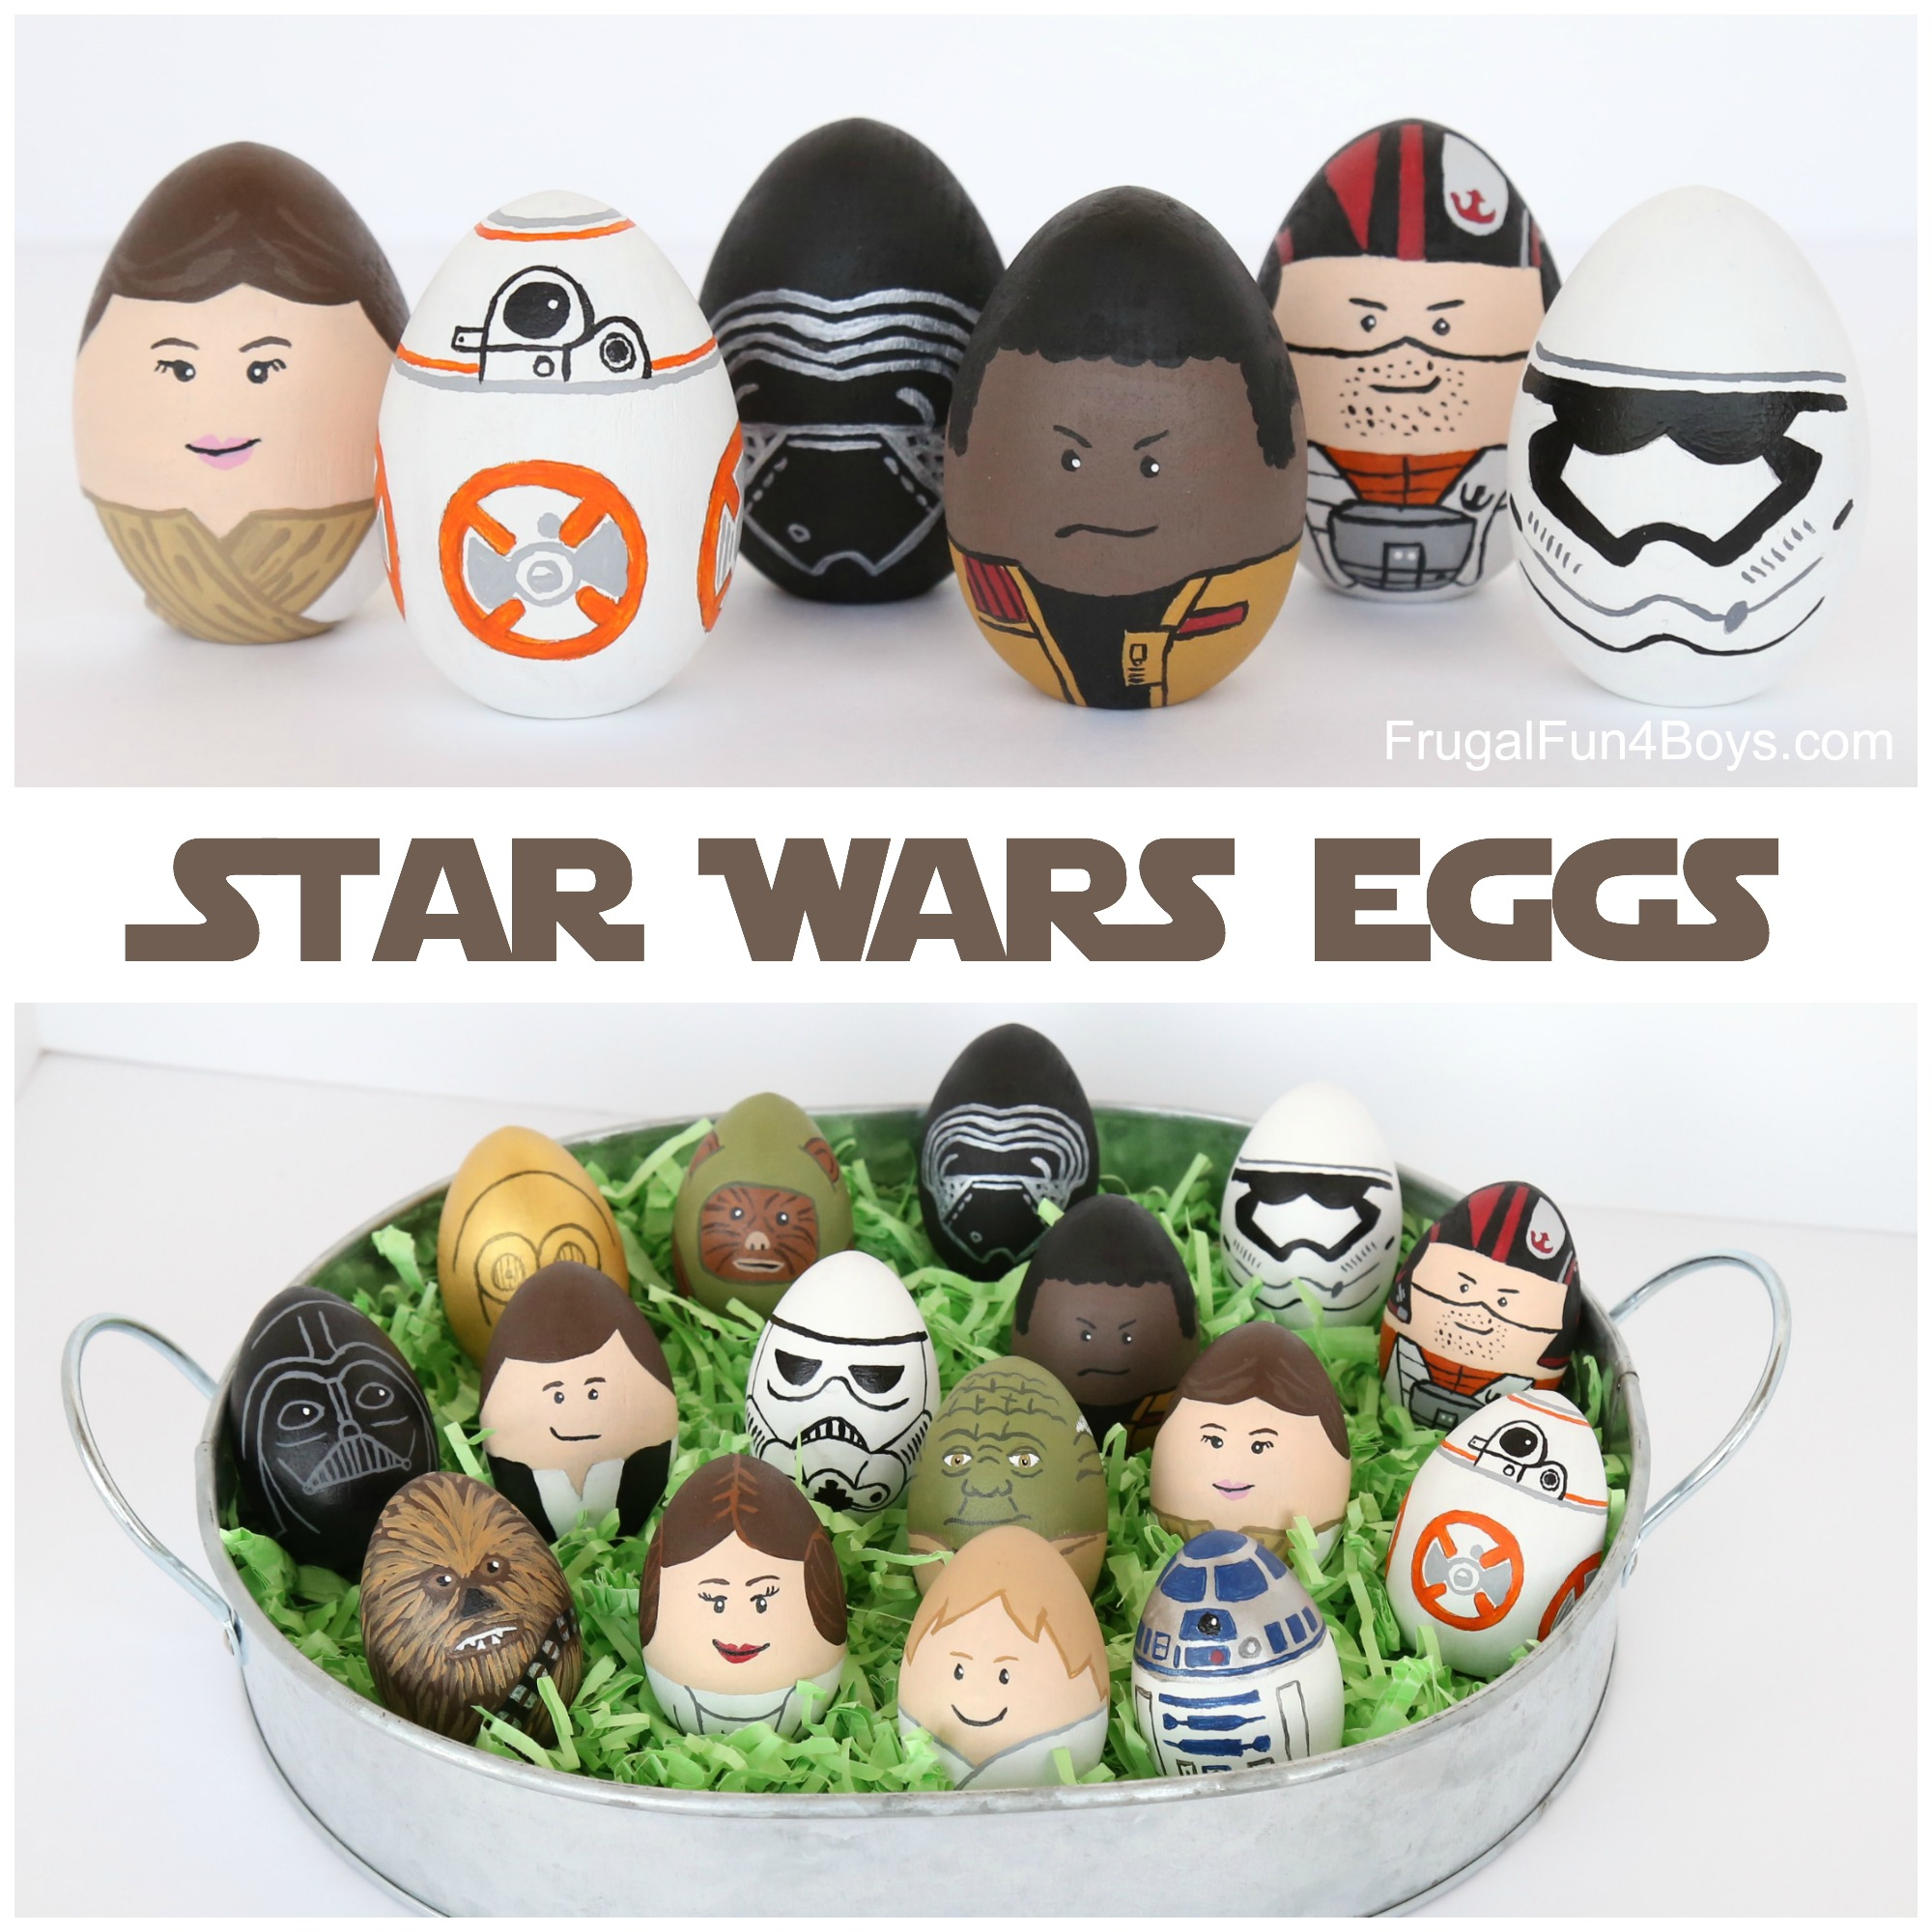 Star Wars Painted Easter Eggs - The Force Awakens, BB8, Rey, Finn, Poe, etc.